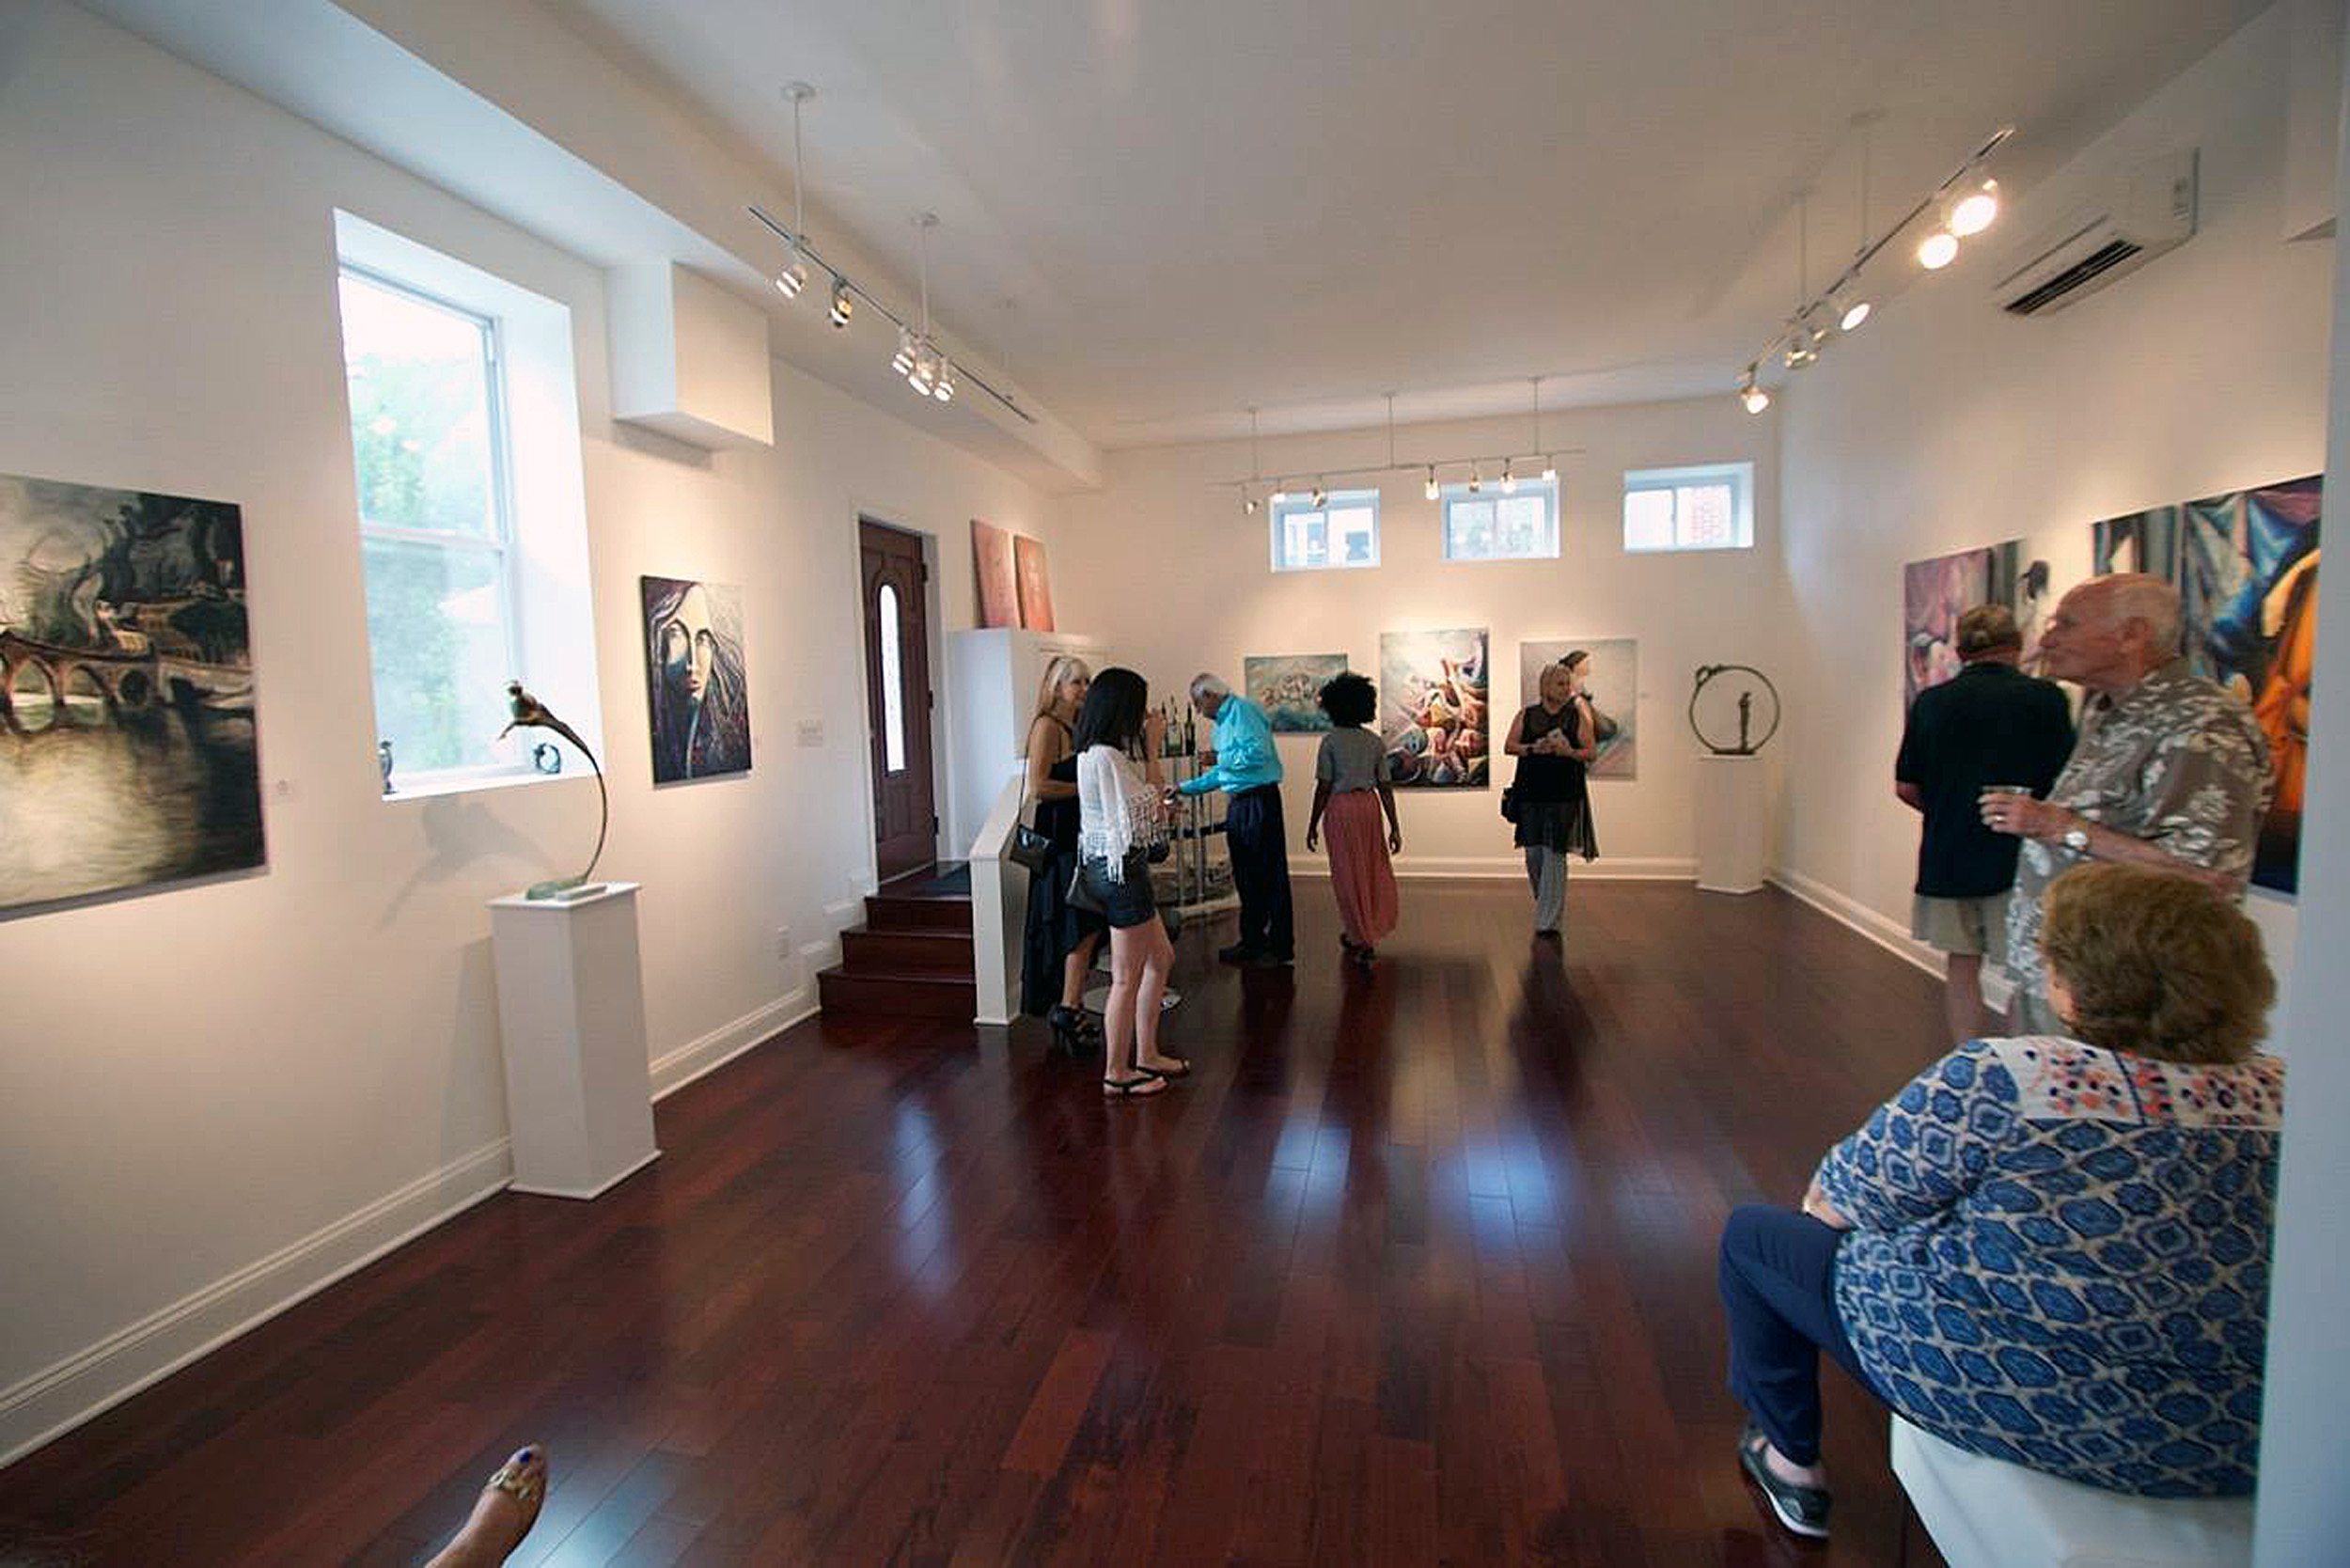 GALLERY NK event space in Washington DC, Maryland, Virginia, DC Area